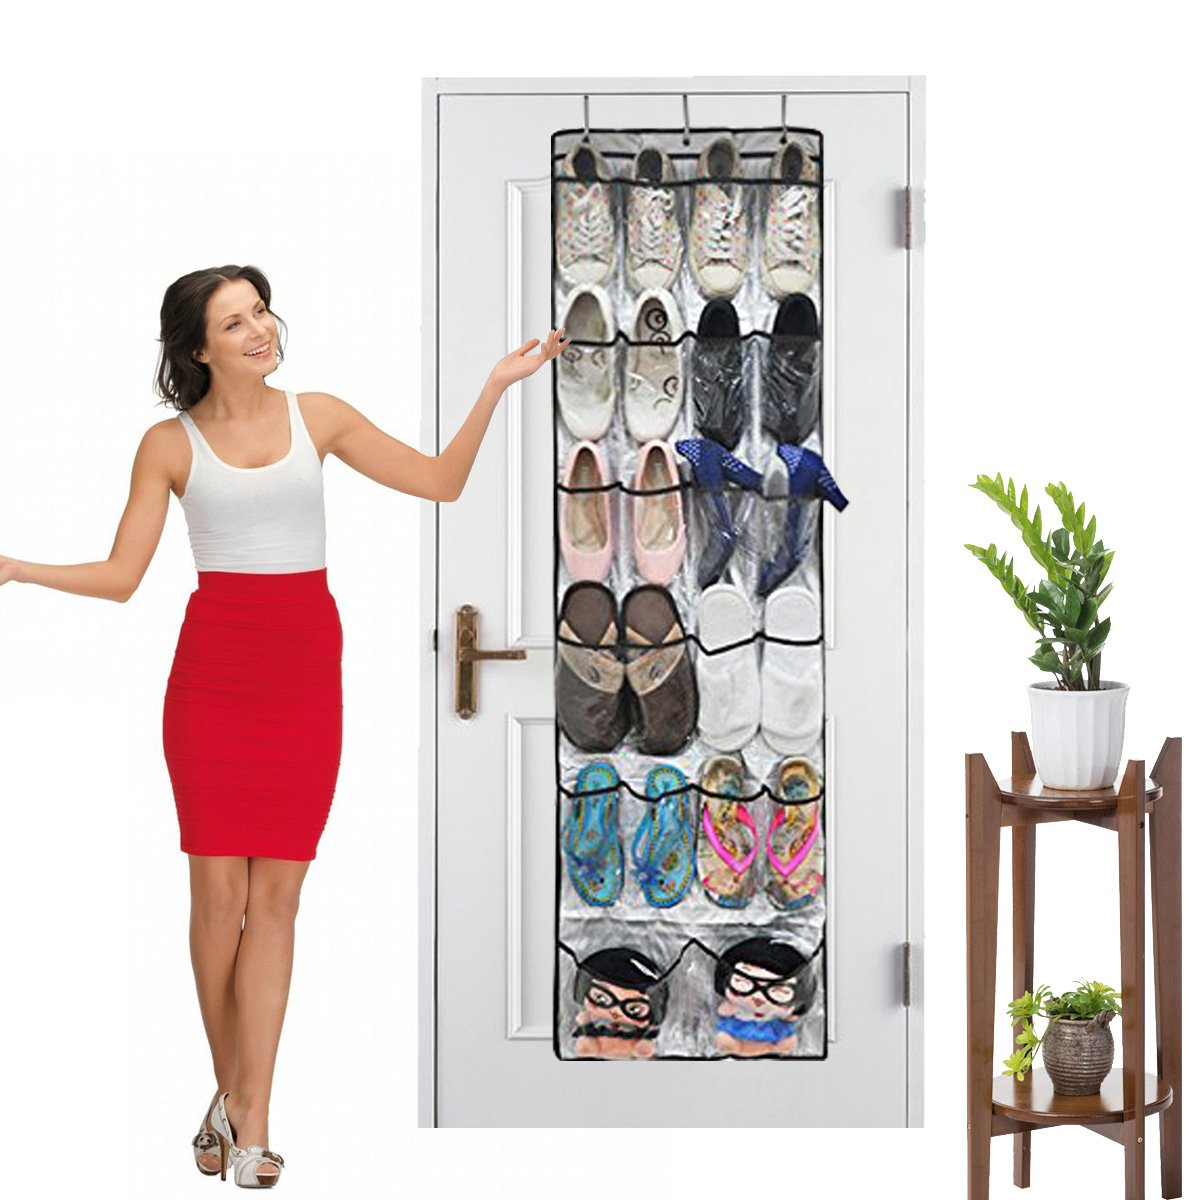 Ndier 24-Pockets Over the Door Organizer Shoe Racks Storage Hanging Bag Shoe Racks Foldable Wardrobes Storage Bag with Hooks , Space-saving Household Item , Best Gift for Your Mom and Girlfriend (2)